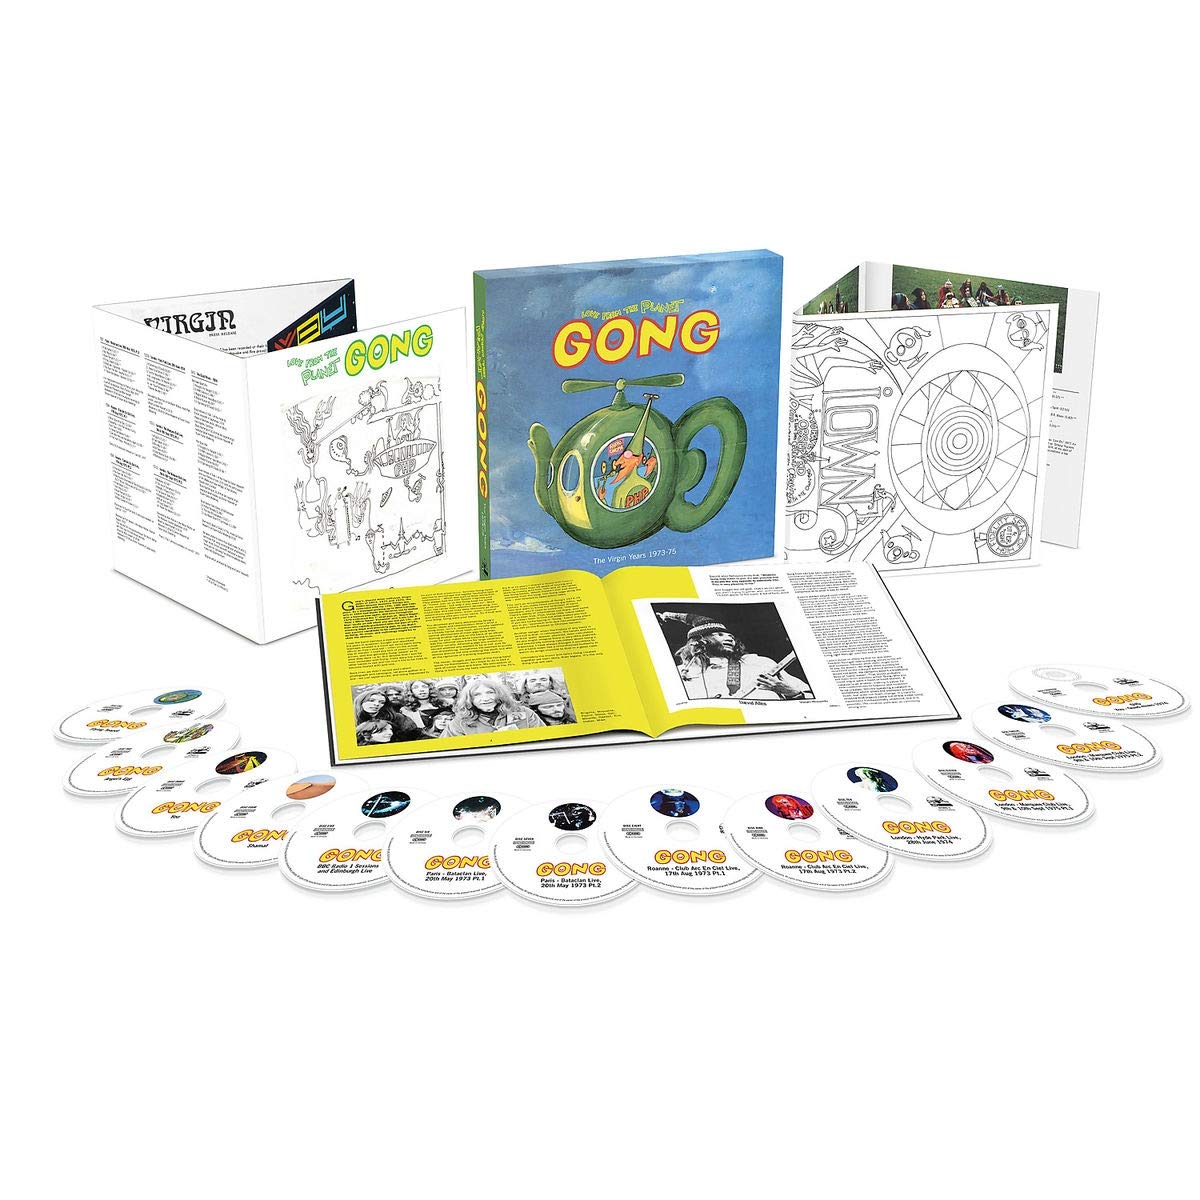 Gong-Love From The Planet Gong  The Virgin Years 1973-1975-(675 890-1)-REMASTERED BOXSET-12CD-FLAC-2019-WRE